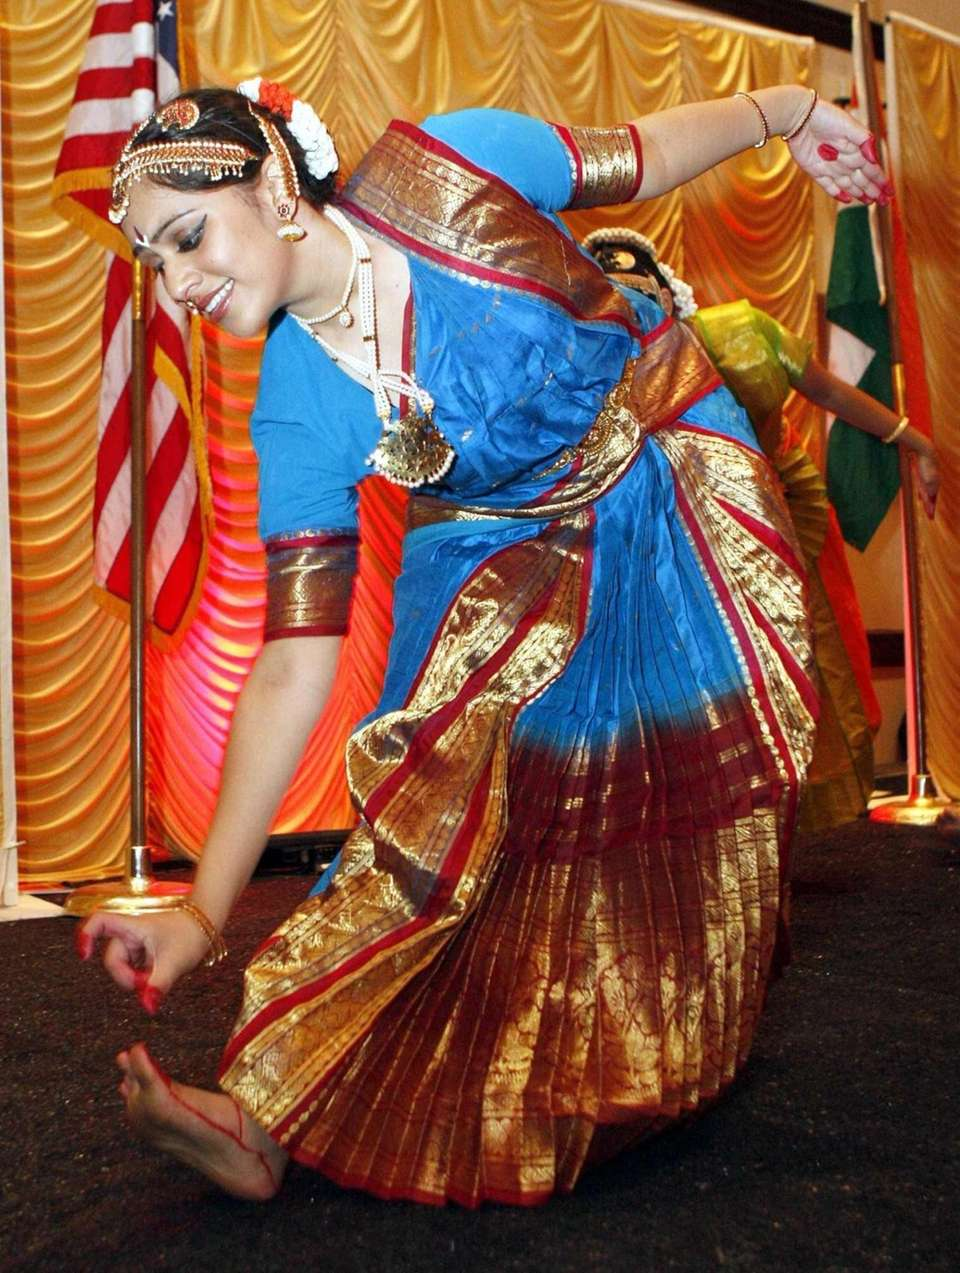 Costumed dancers perform for the thousands of visitors